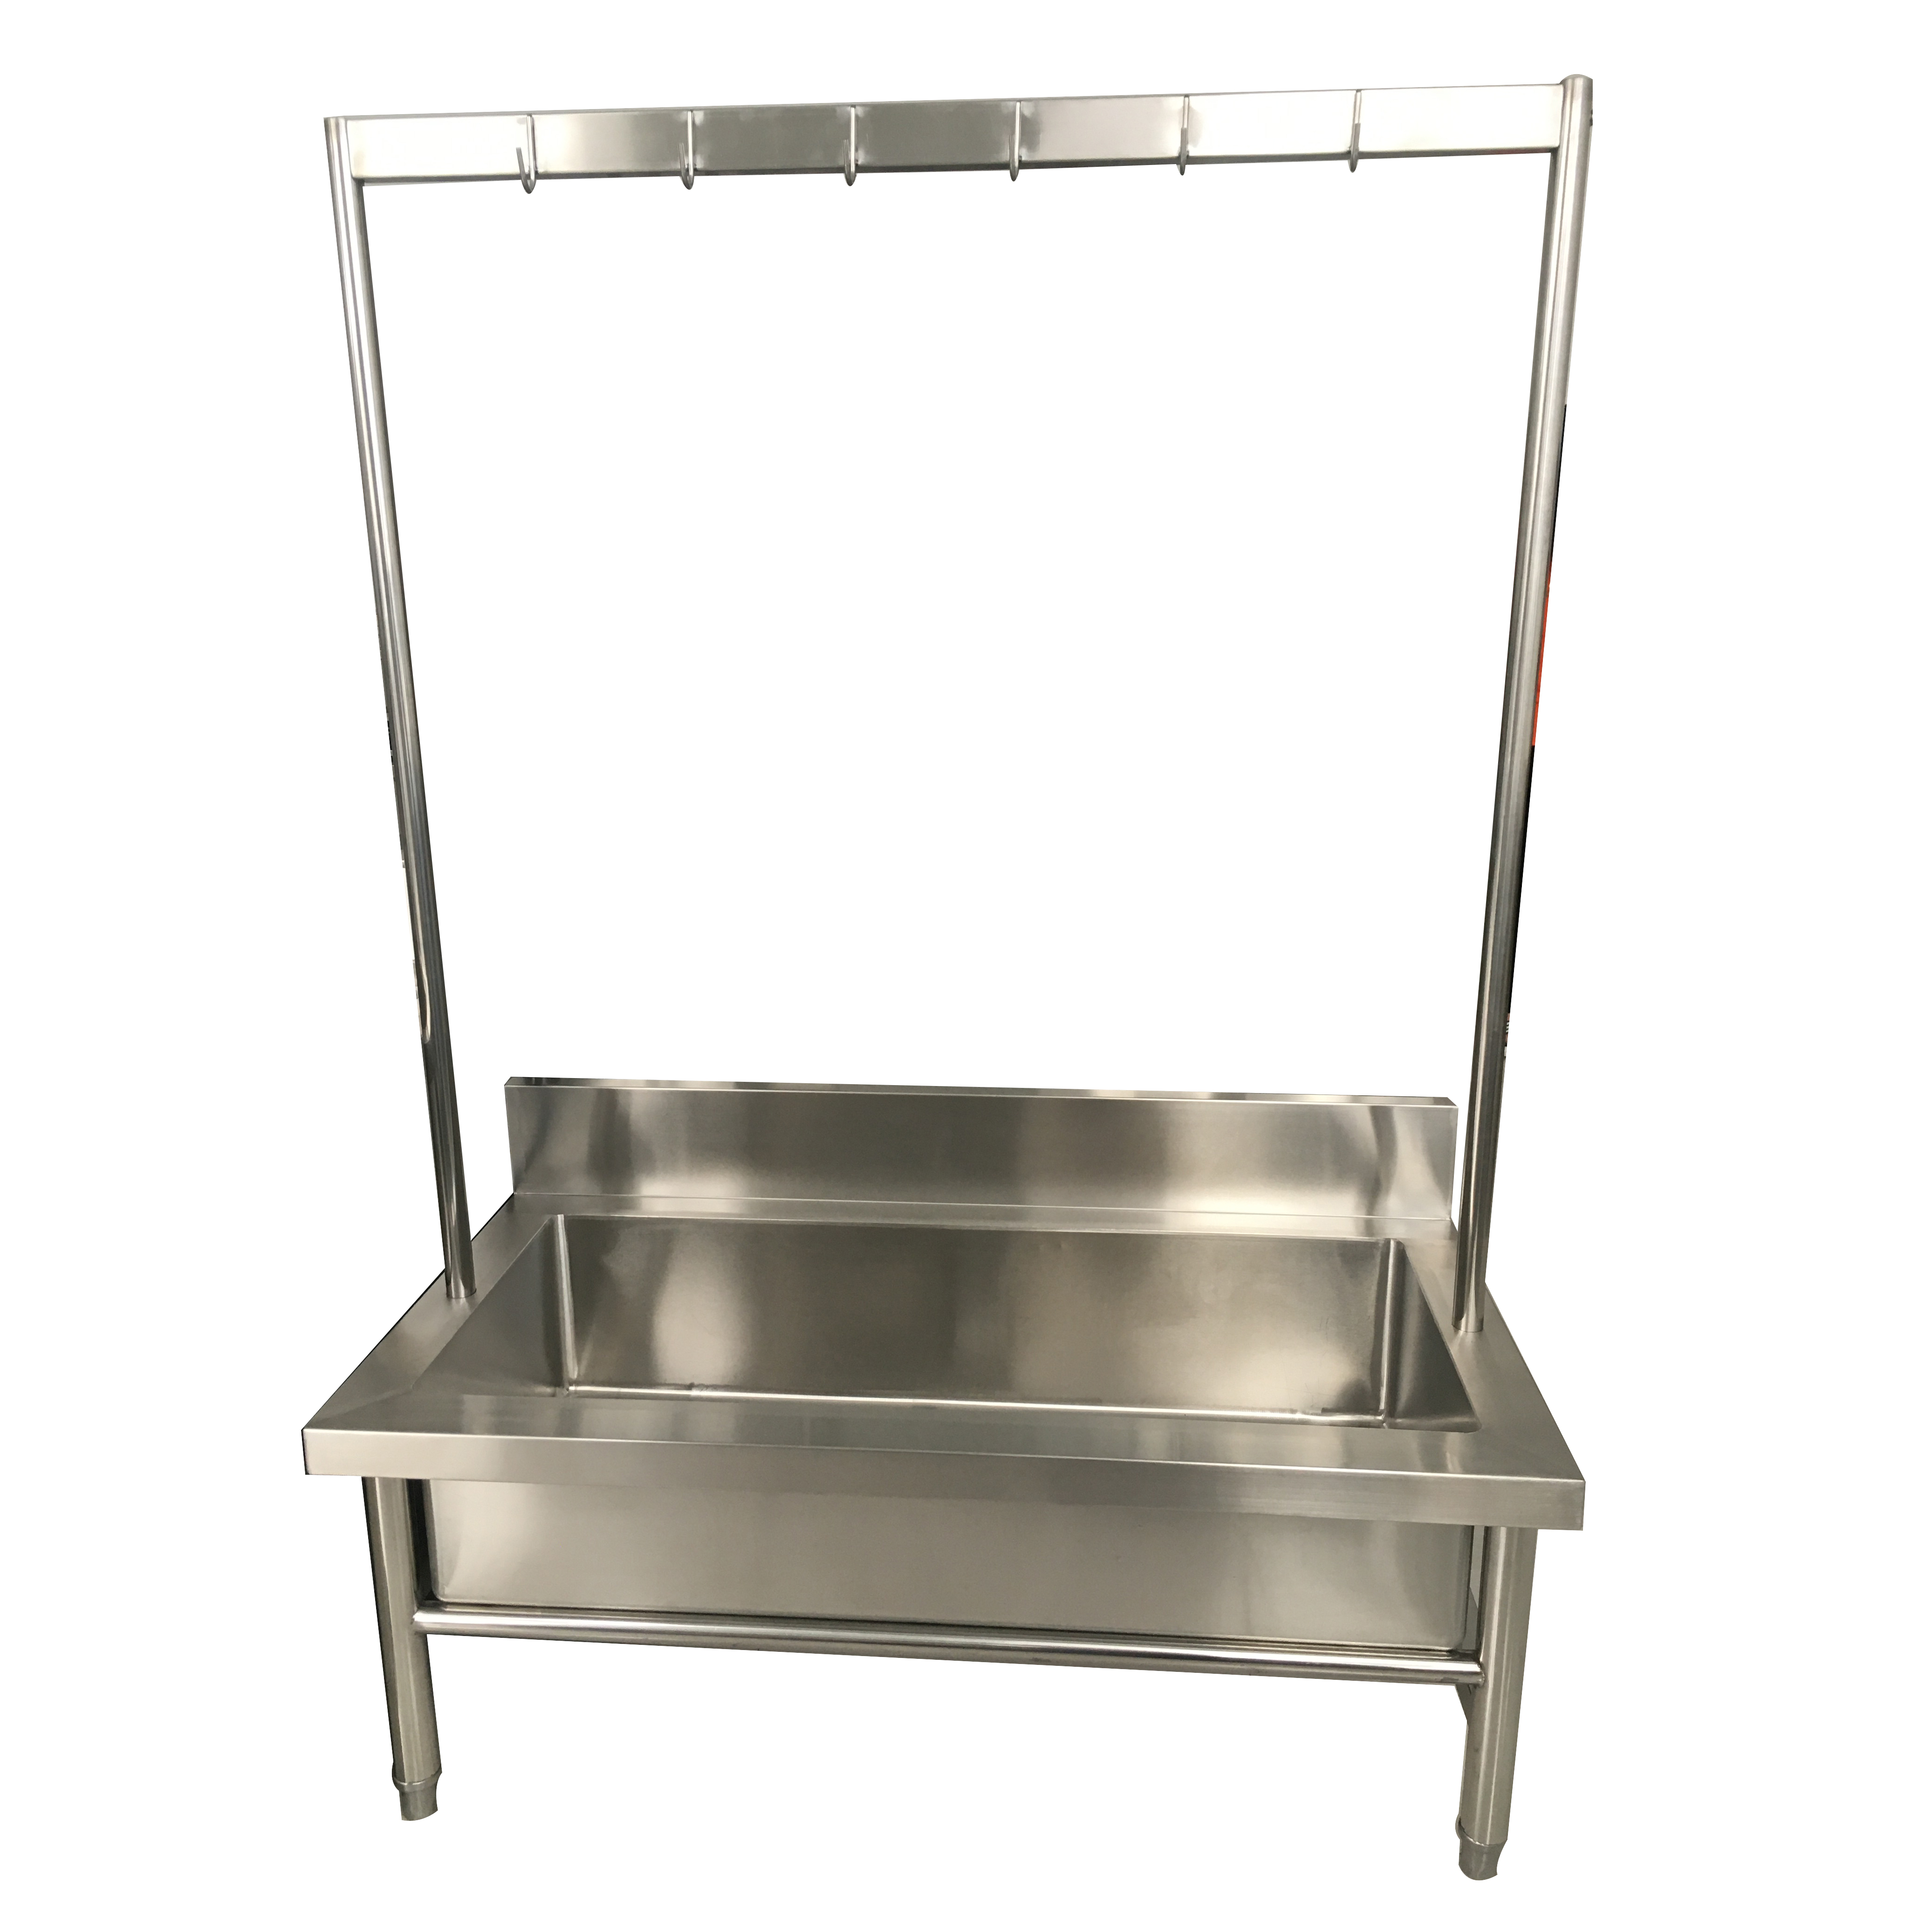 high quality stainless steel mop sink kitchen sink buy stainless steel sink mop sink kitchen sink product on alibaba com